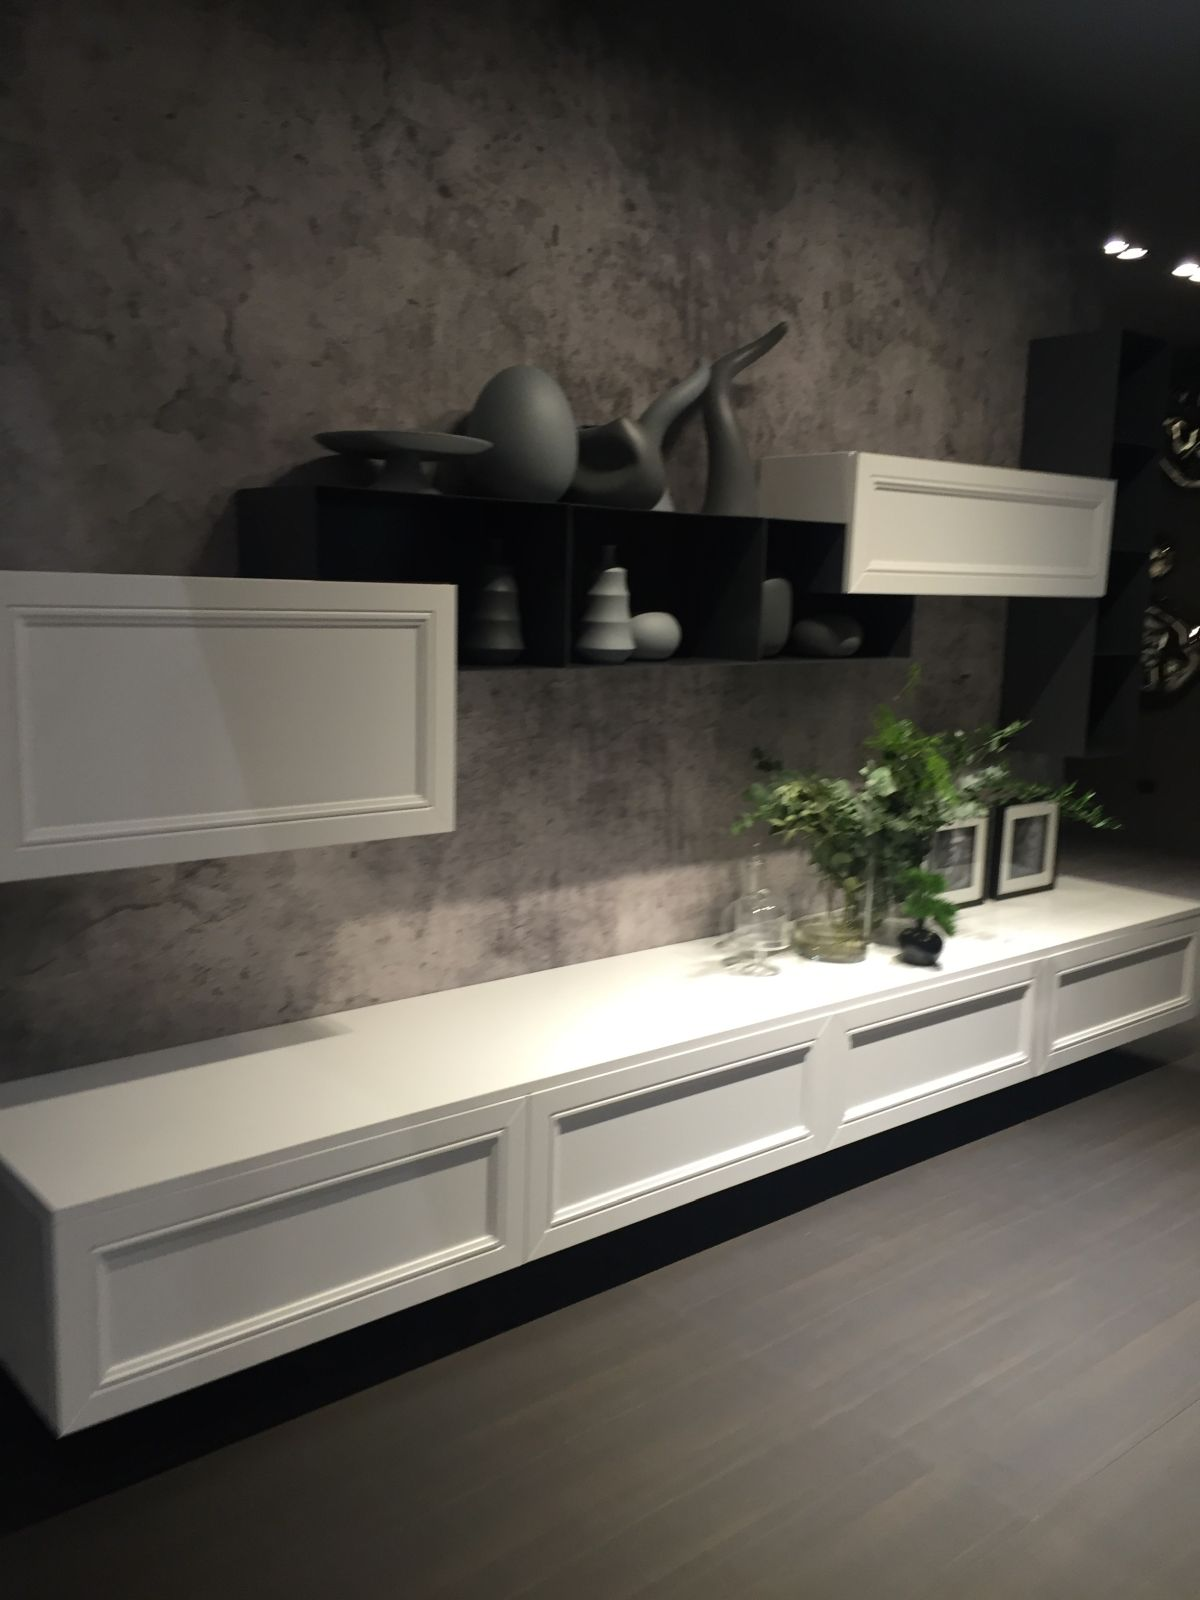 White and black media unit with open space shelves